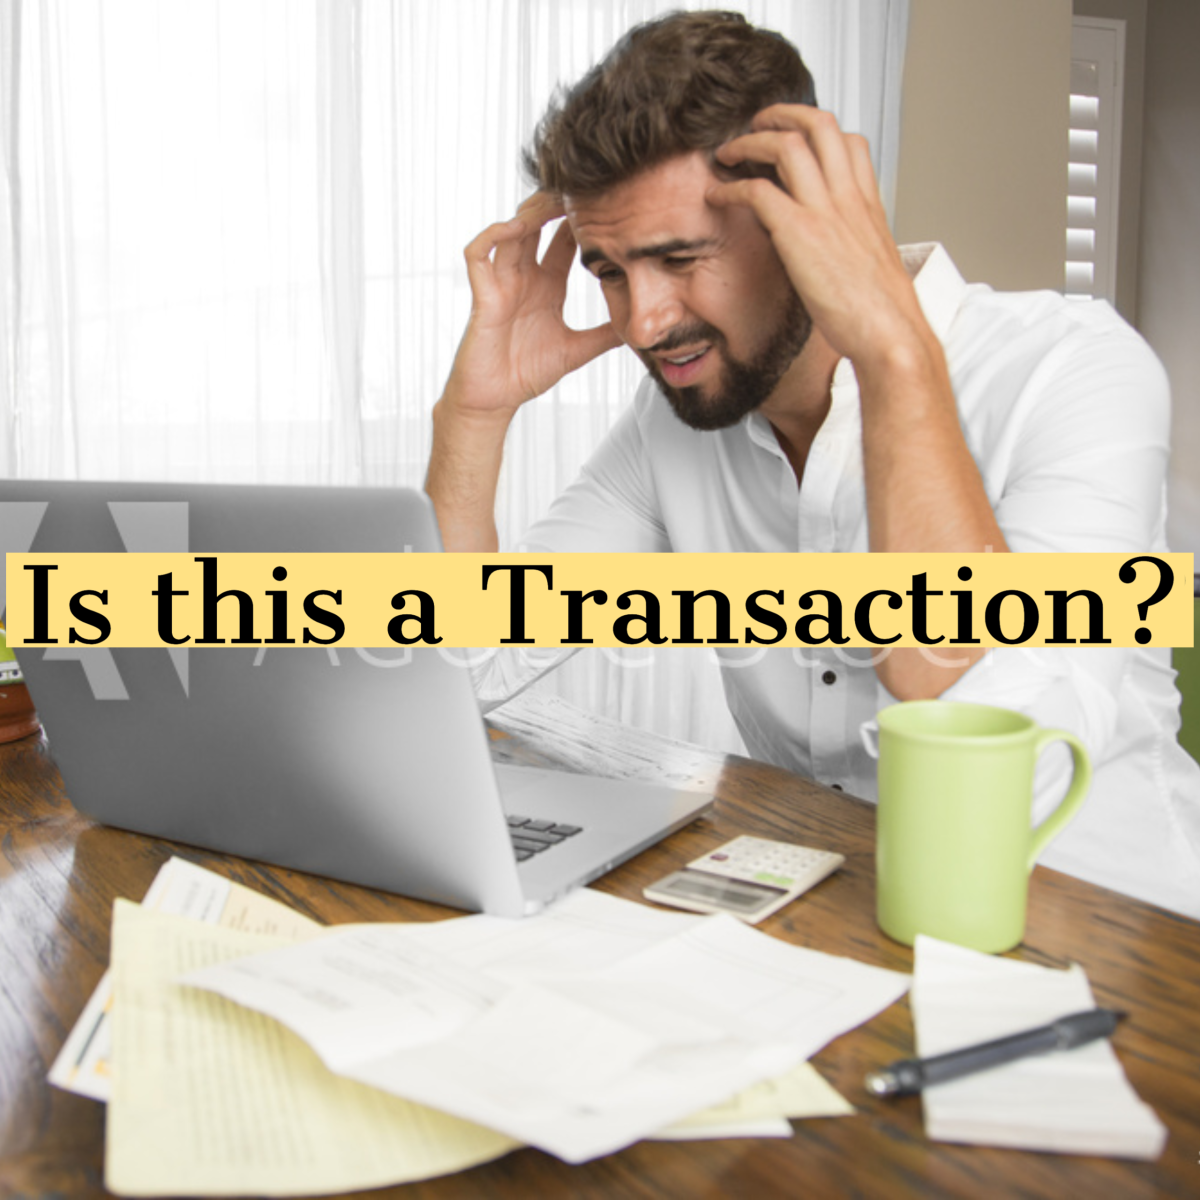 how-to-identify-and-analyze-transactions-in-accounting